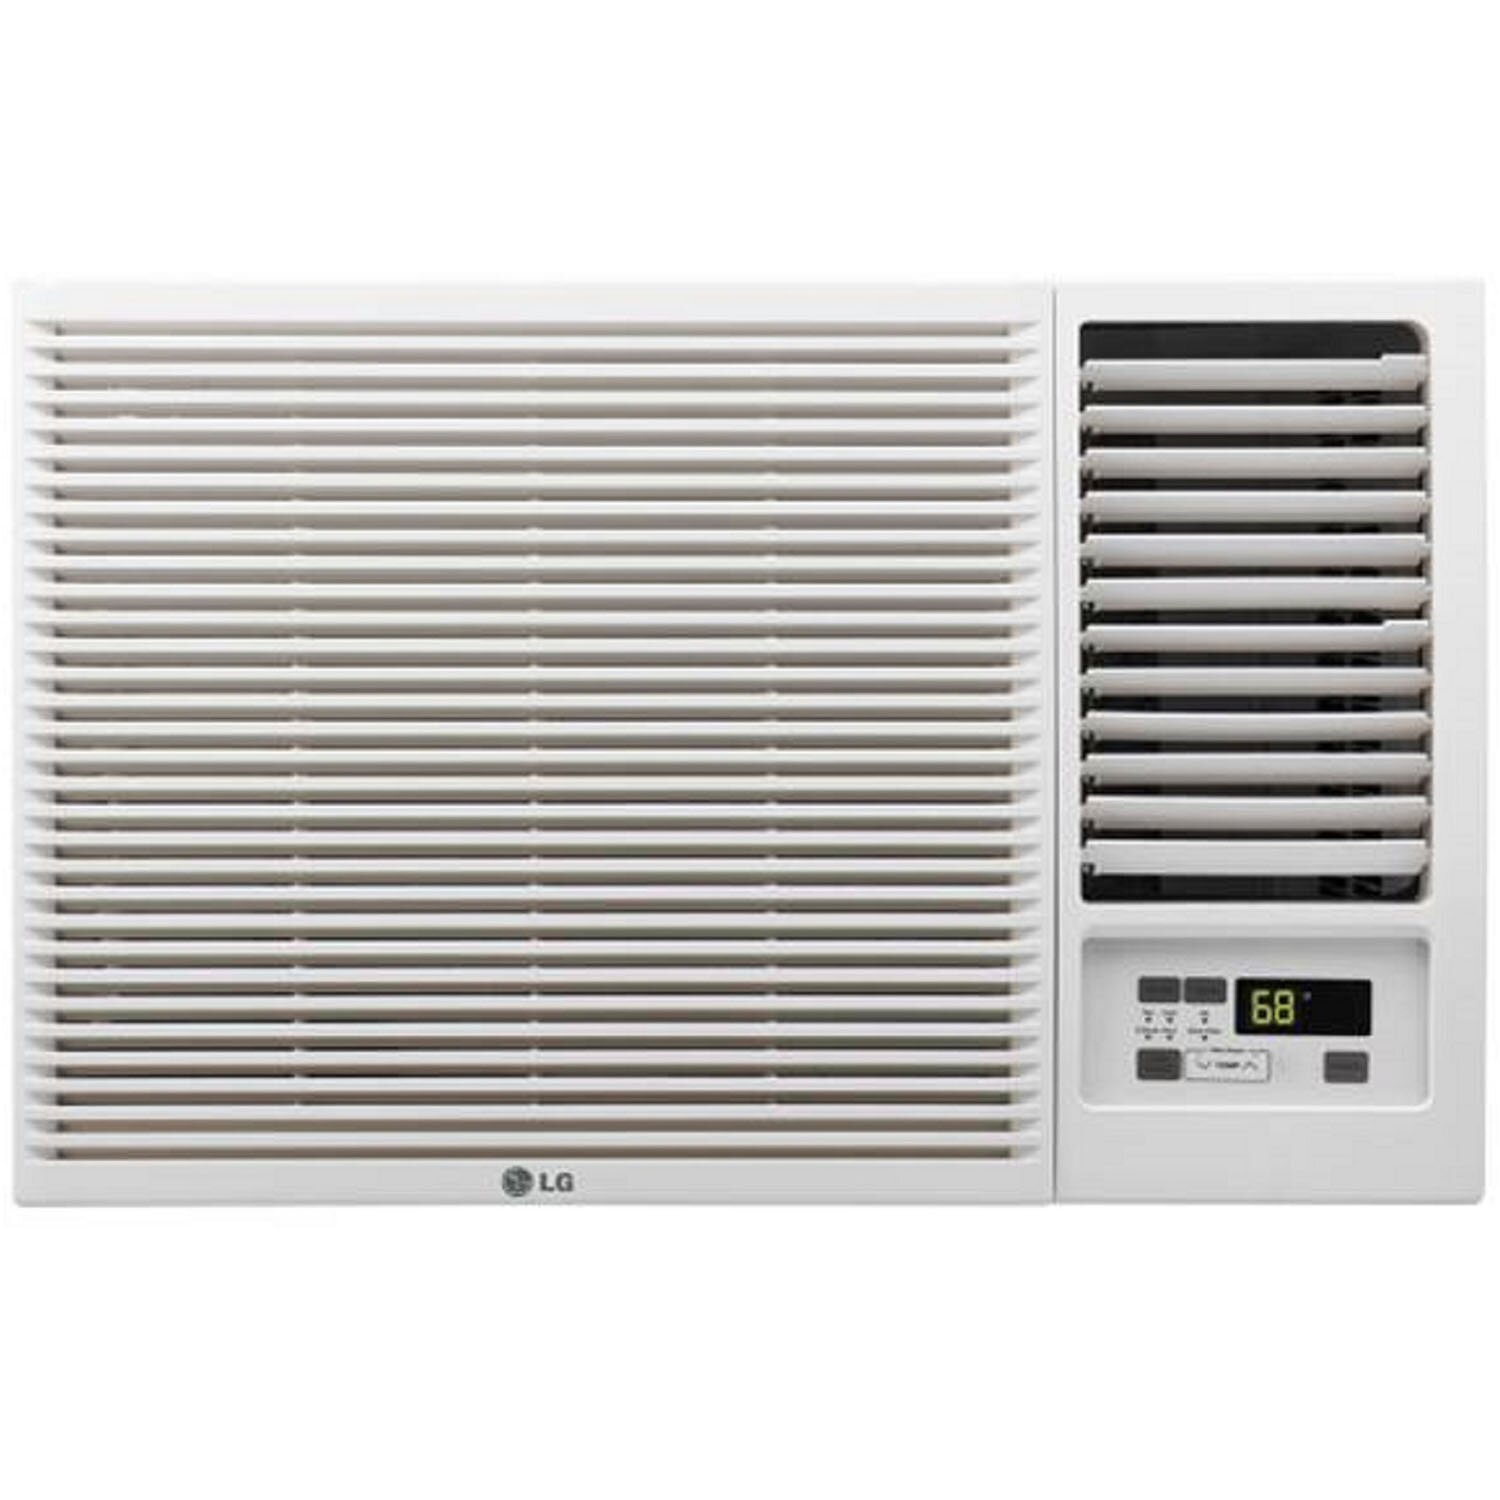 Lg 12000 btu window air conditioner wayfair for 12000 btu ac heater window unit